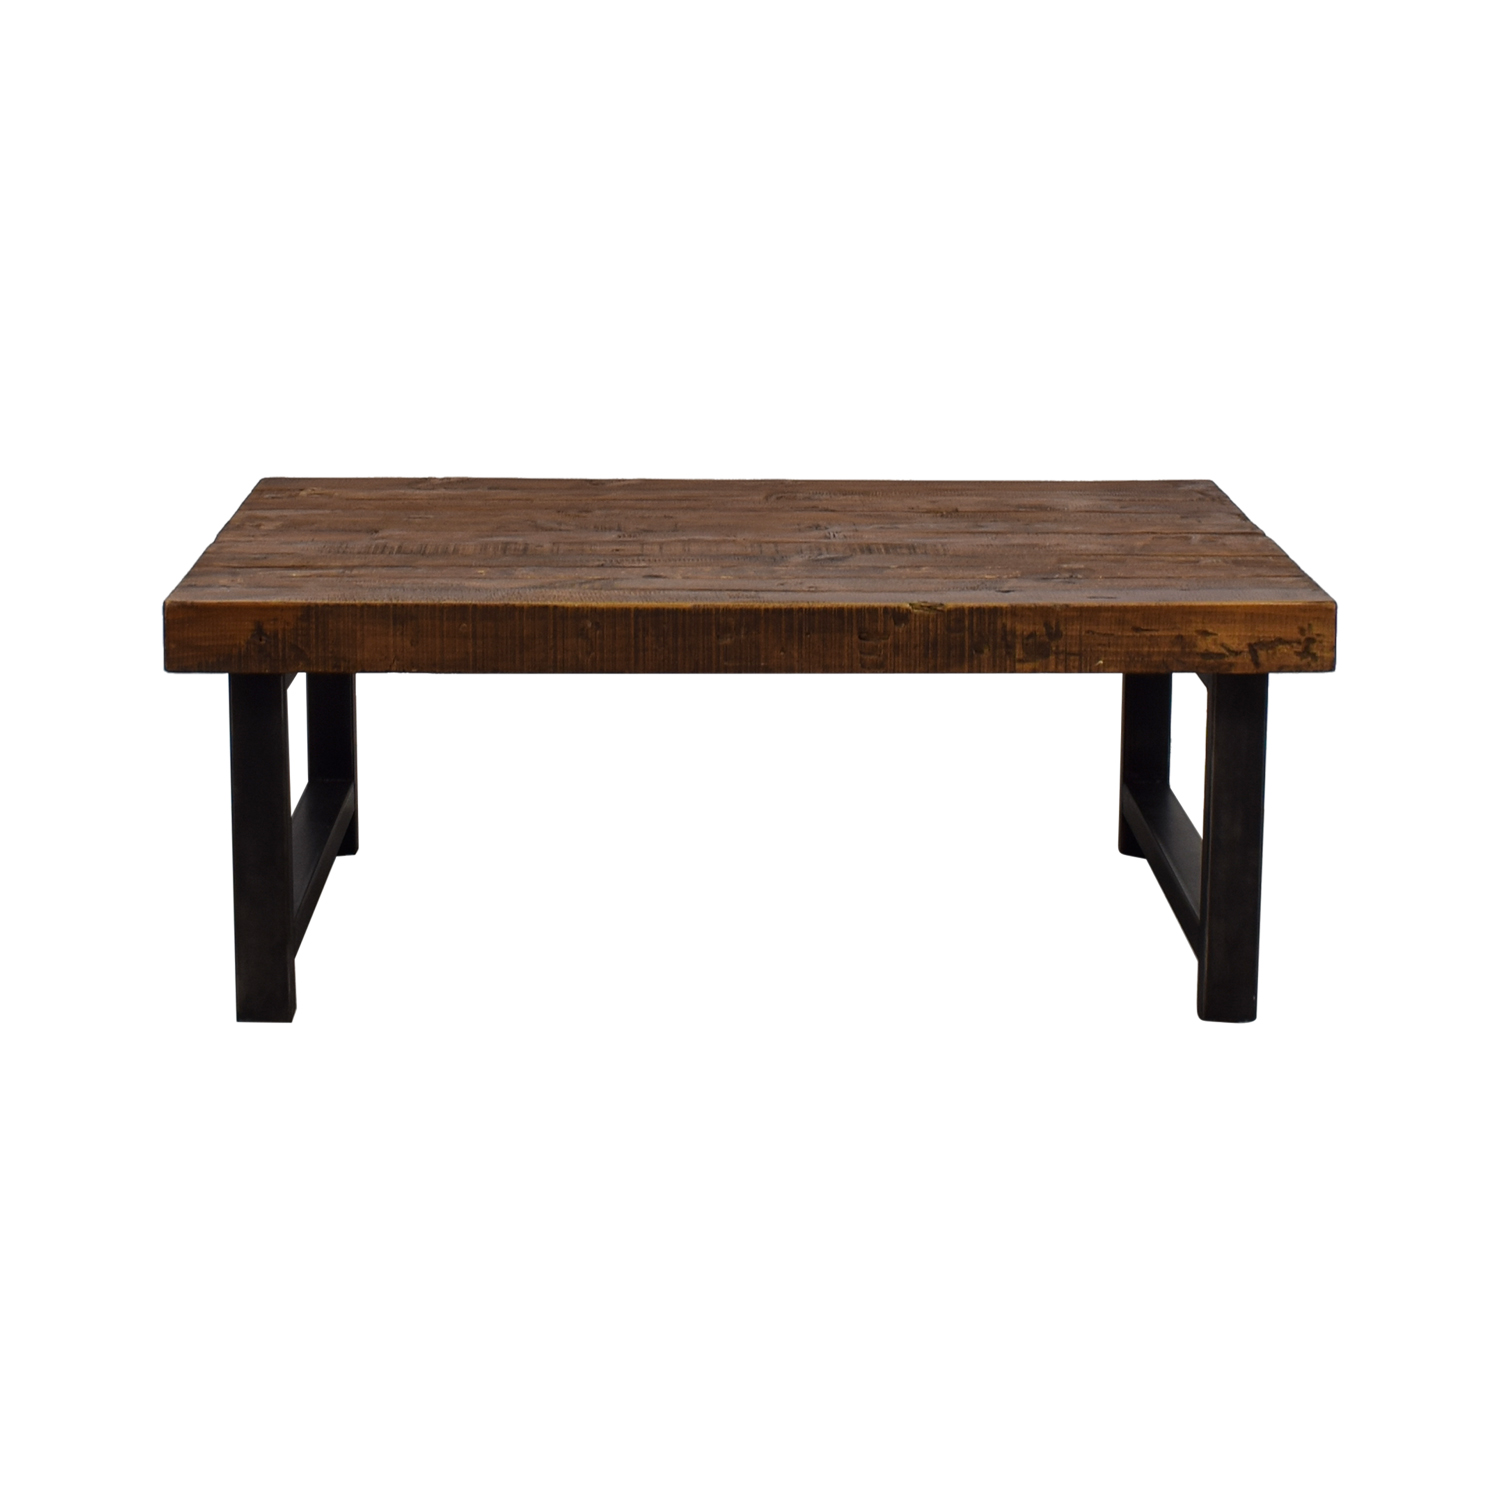 Pottery Barn Pottery Barn Reclaimed Wood Coffee Table for sale